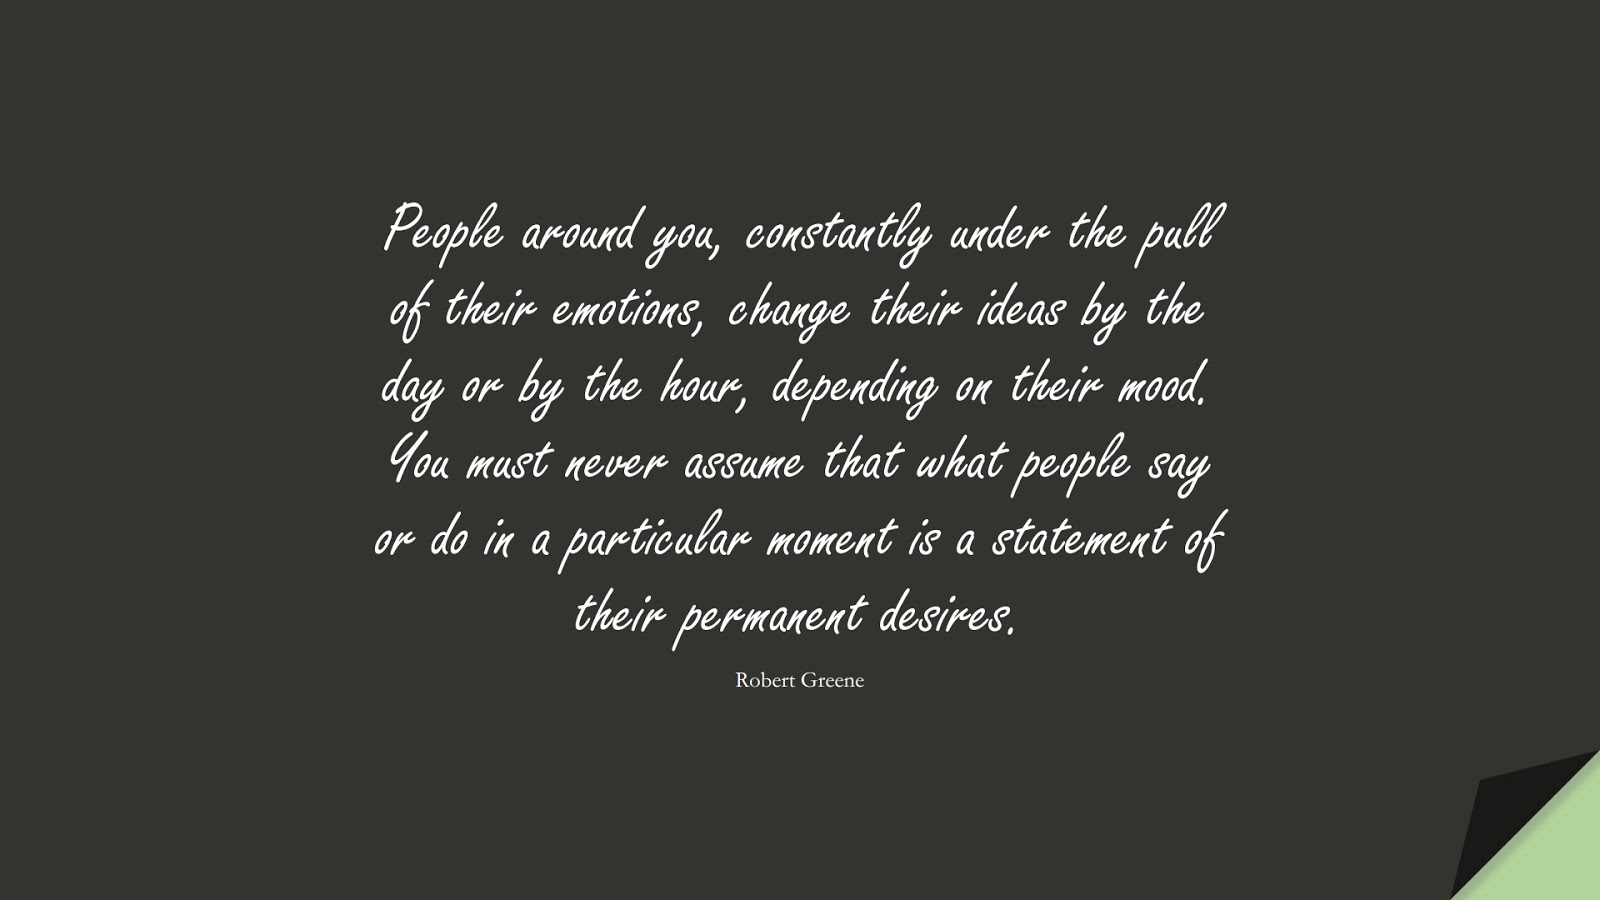 People around you, constantly under the pull of their emotions, change their ideas by the day or by the hour, depending on their mood. You must never assume that what people say or do in a particular moment is a statement of their permanent desires. (Robert Greene);  #ChangeQuotes